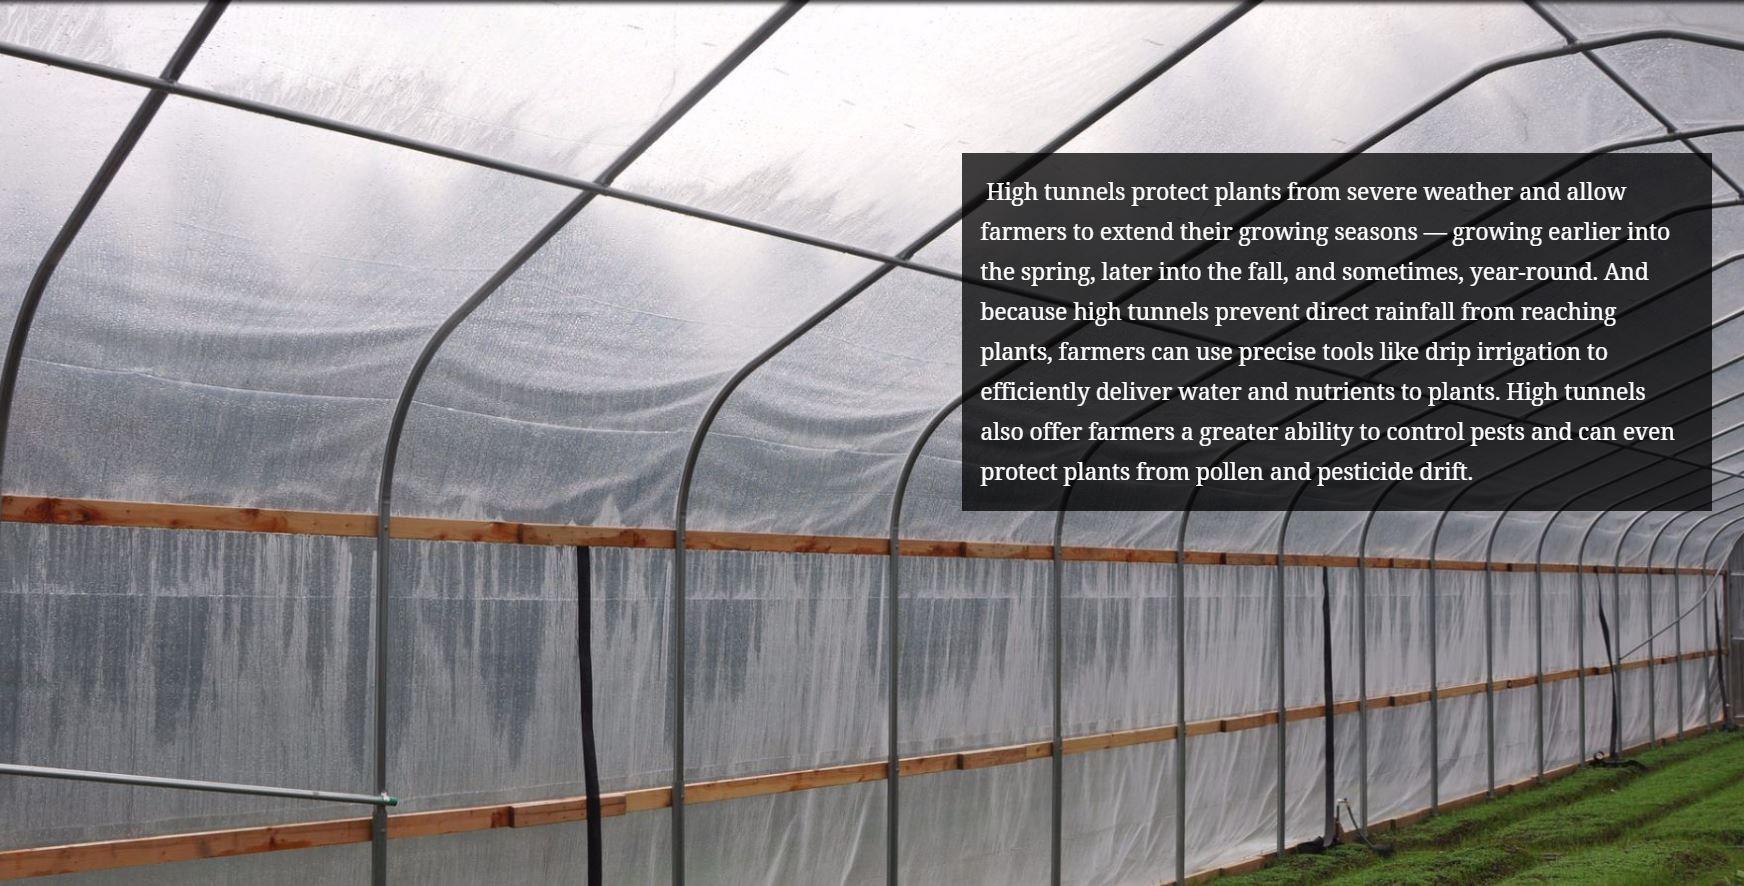 High tunnels protect plants from severe weather and allow farmers to extend their growing seasons —   growing earlier into the spring, later into the fall, and sometimes, year-round. And because high tunnels   prevent direct rainfall from reaching plants, farmers can use precise tools like drip irri